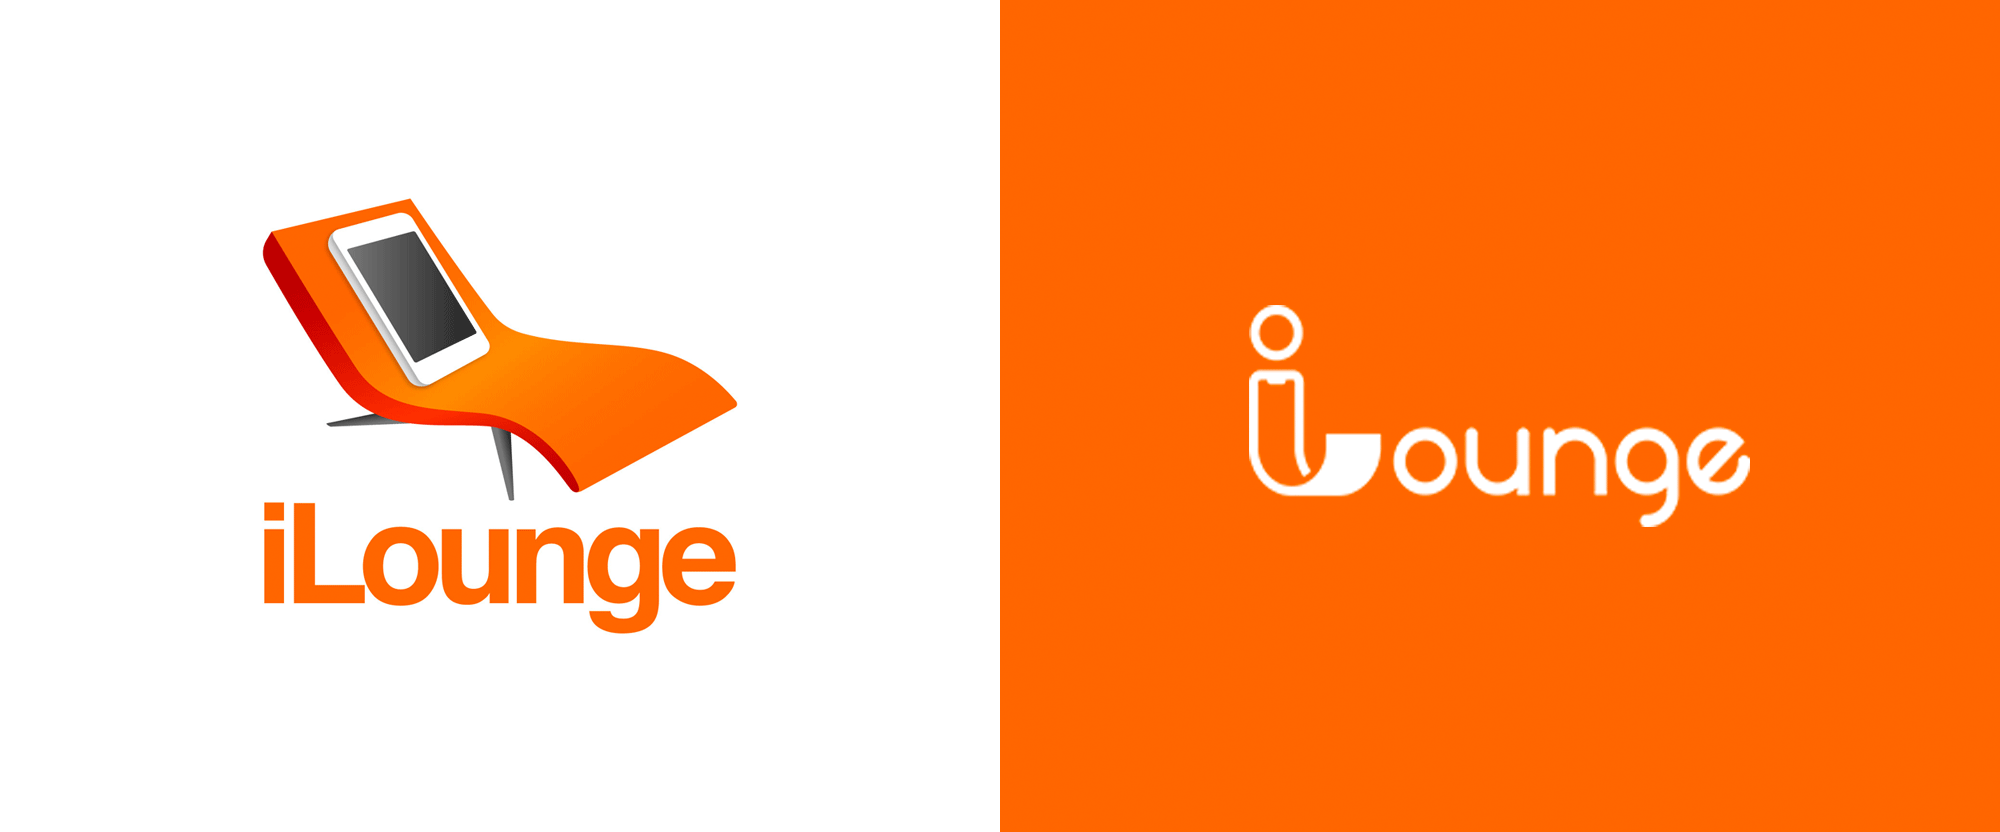 New Logo for iLounge